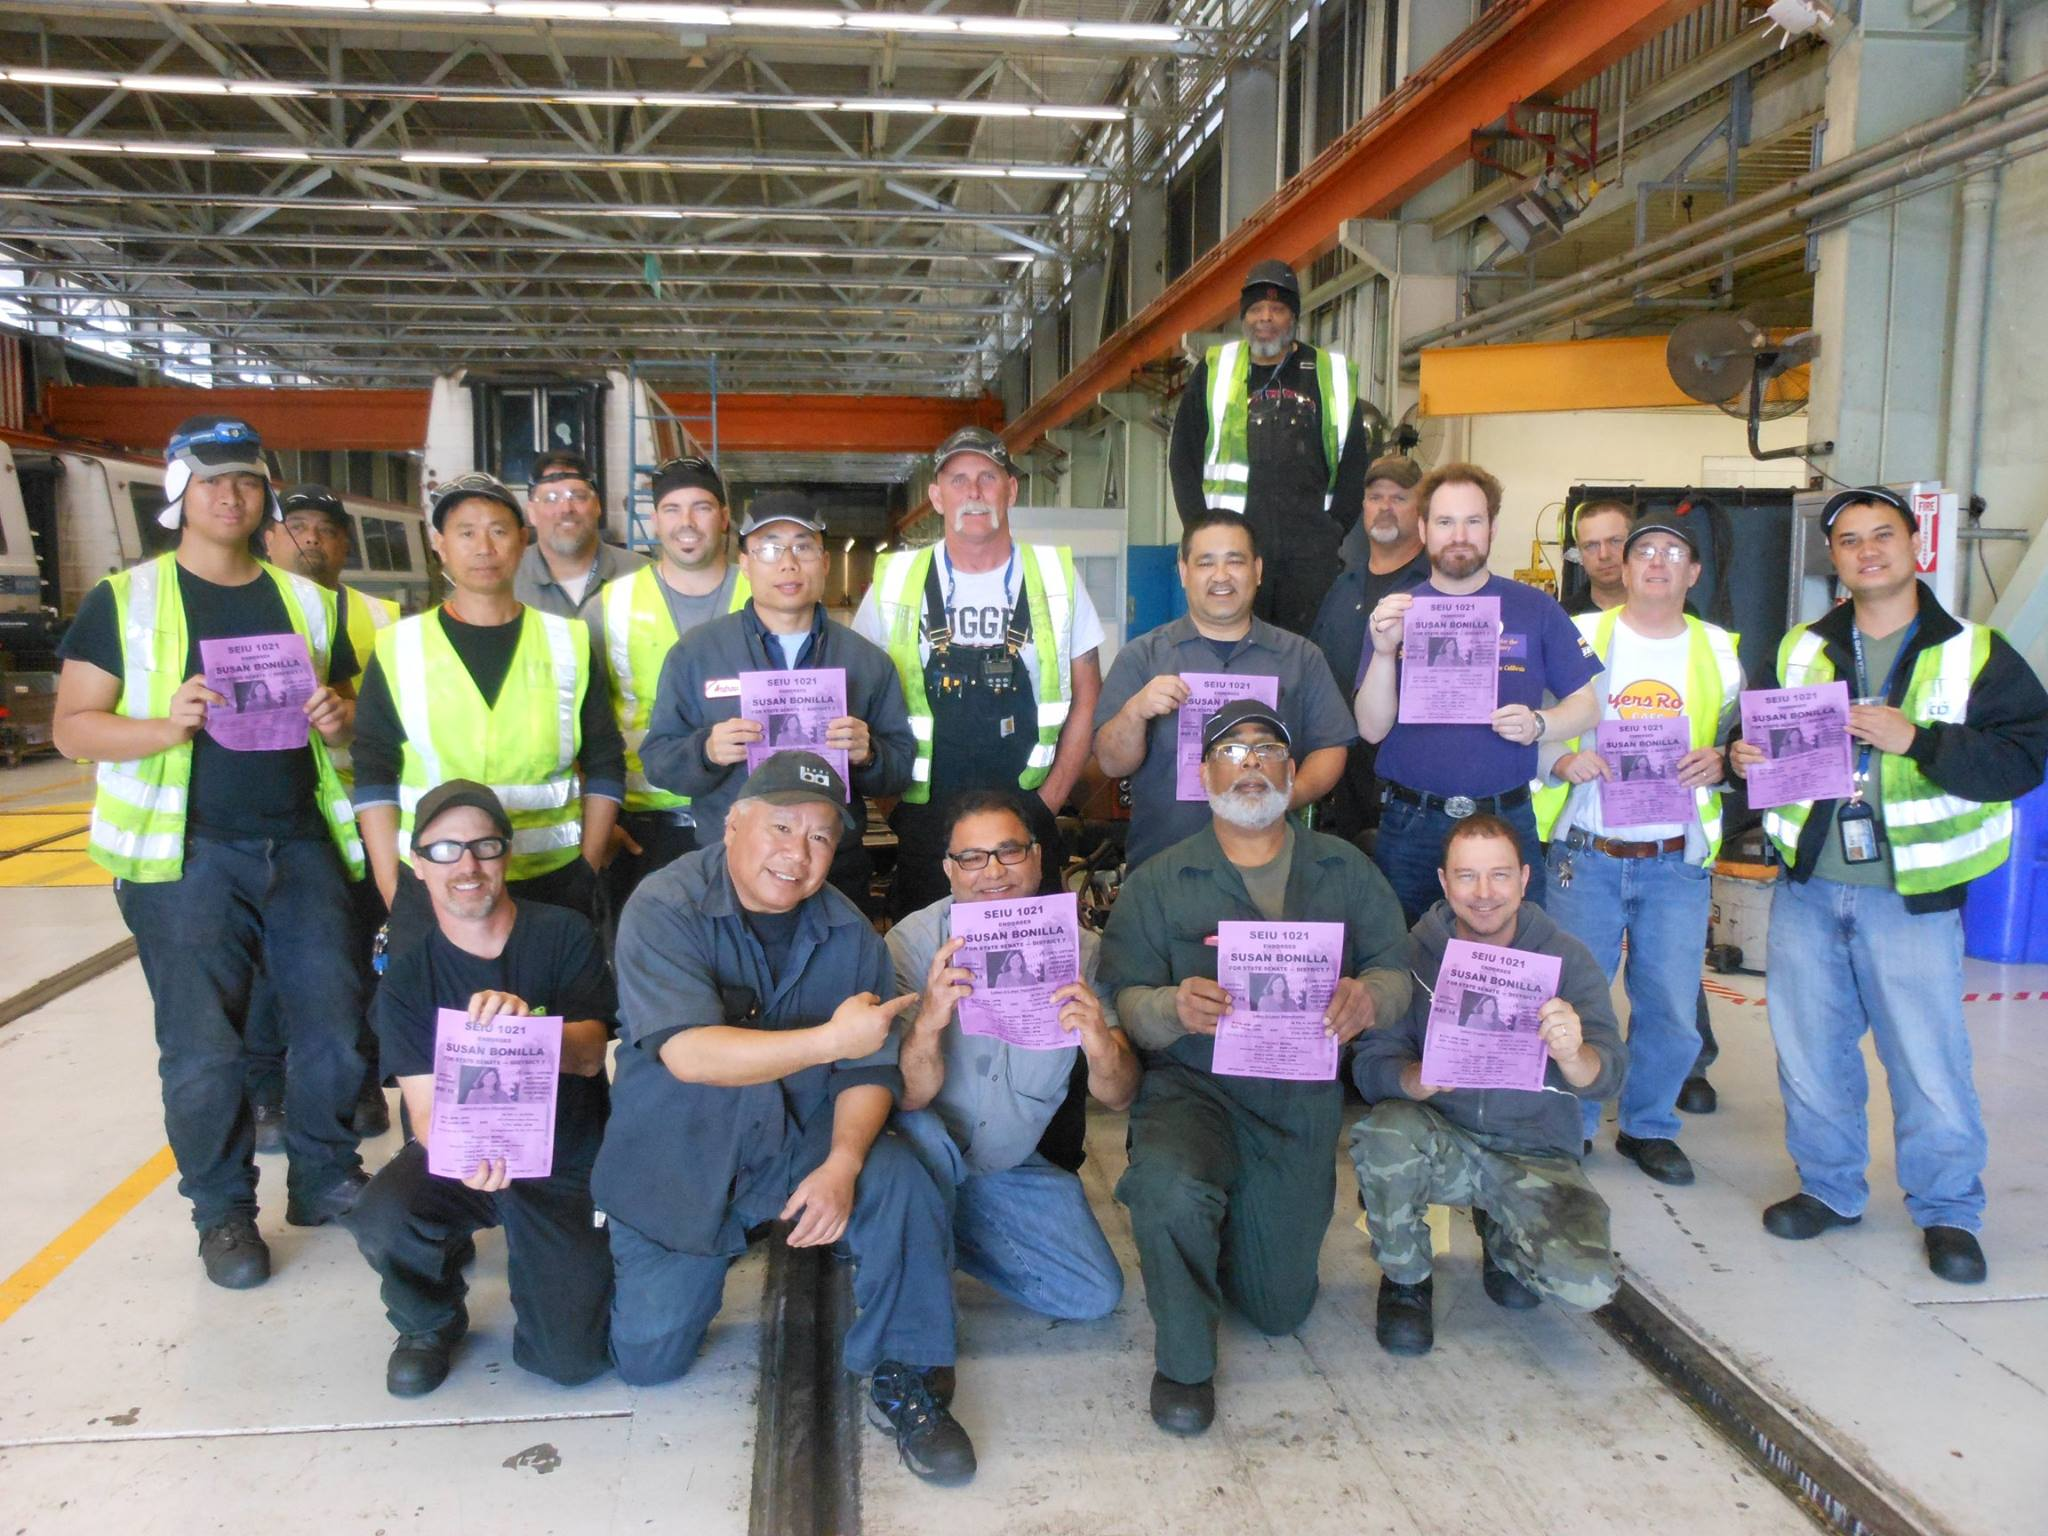 RIC3-BART_Richmond_Yard-Shift_No._2_rallies_for_Susan_Bonilla.jpg